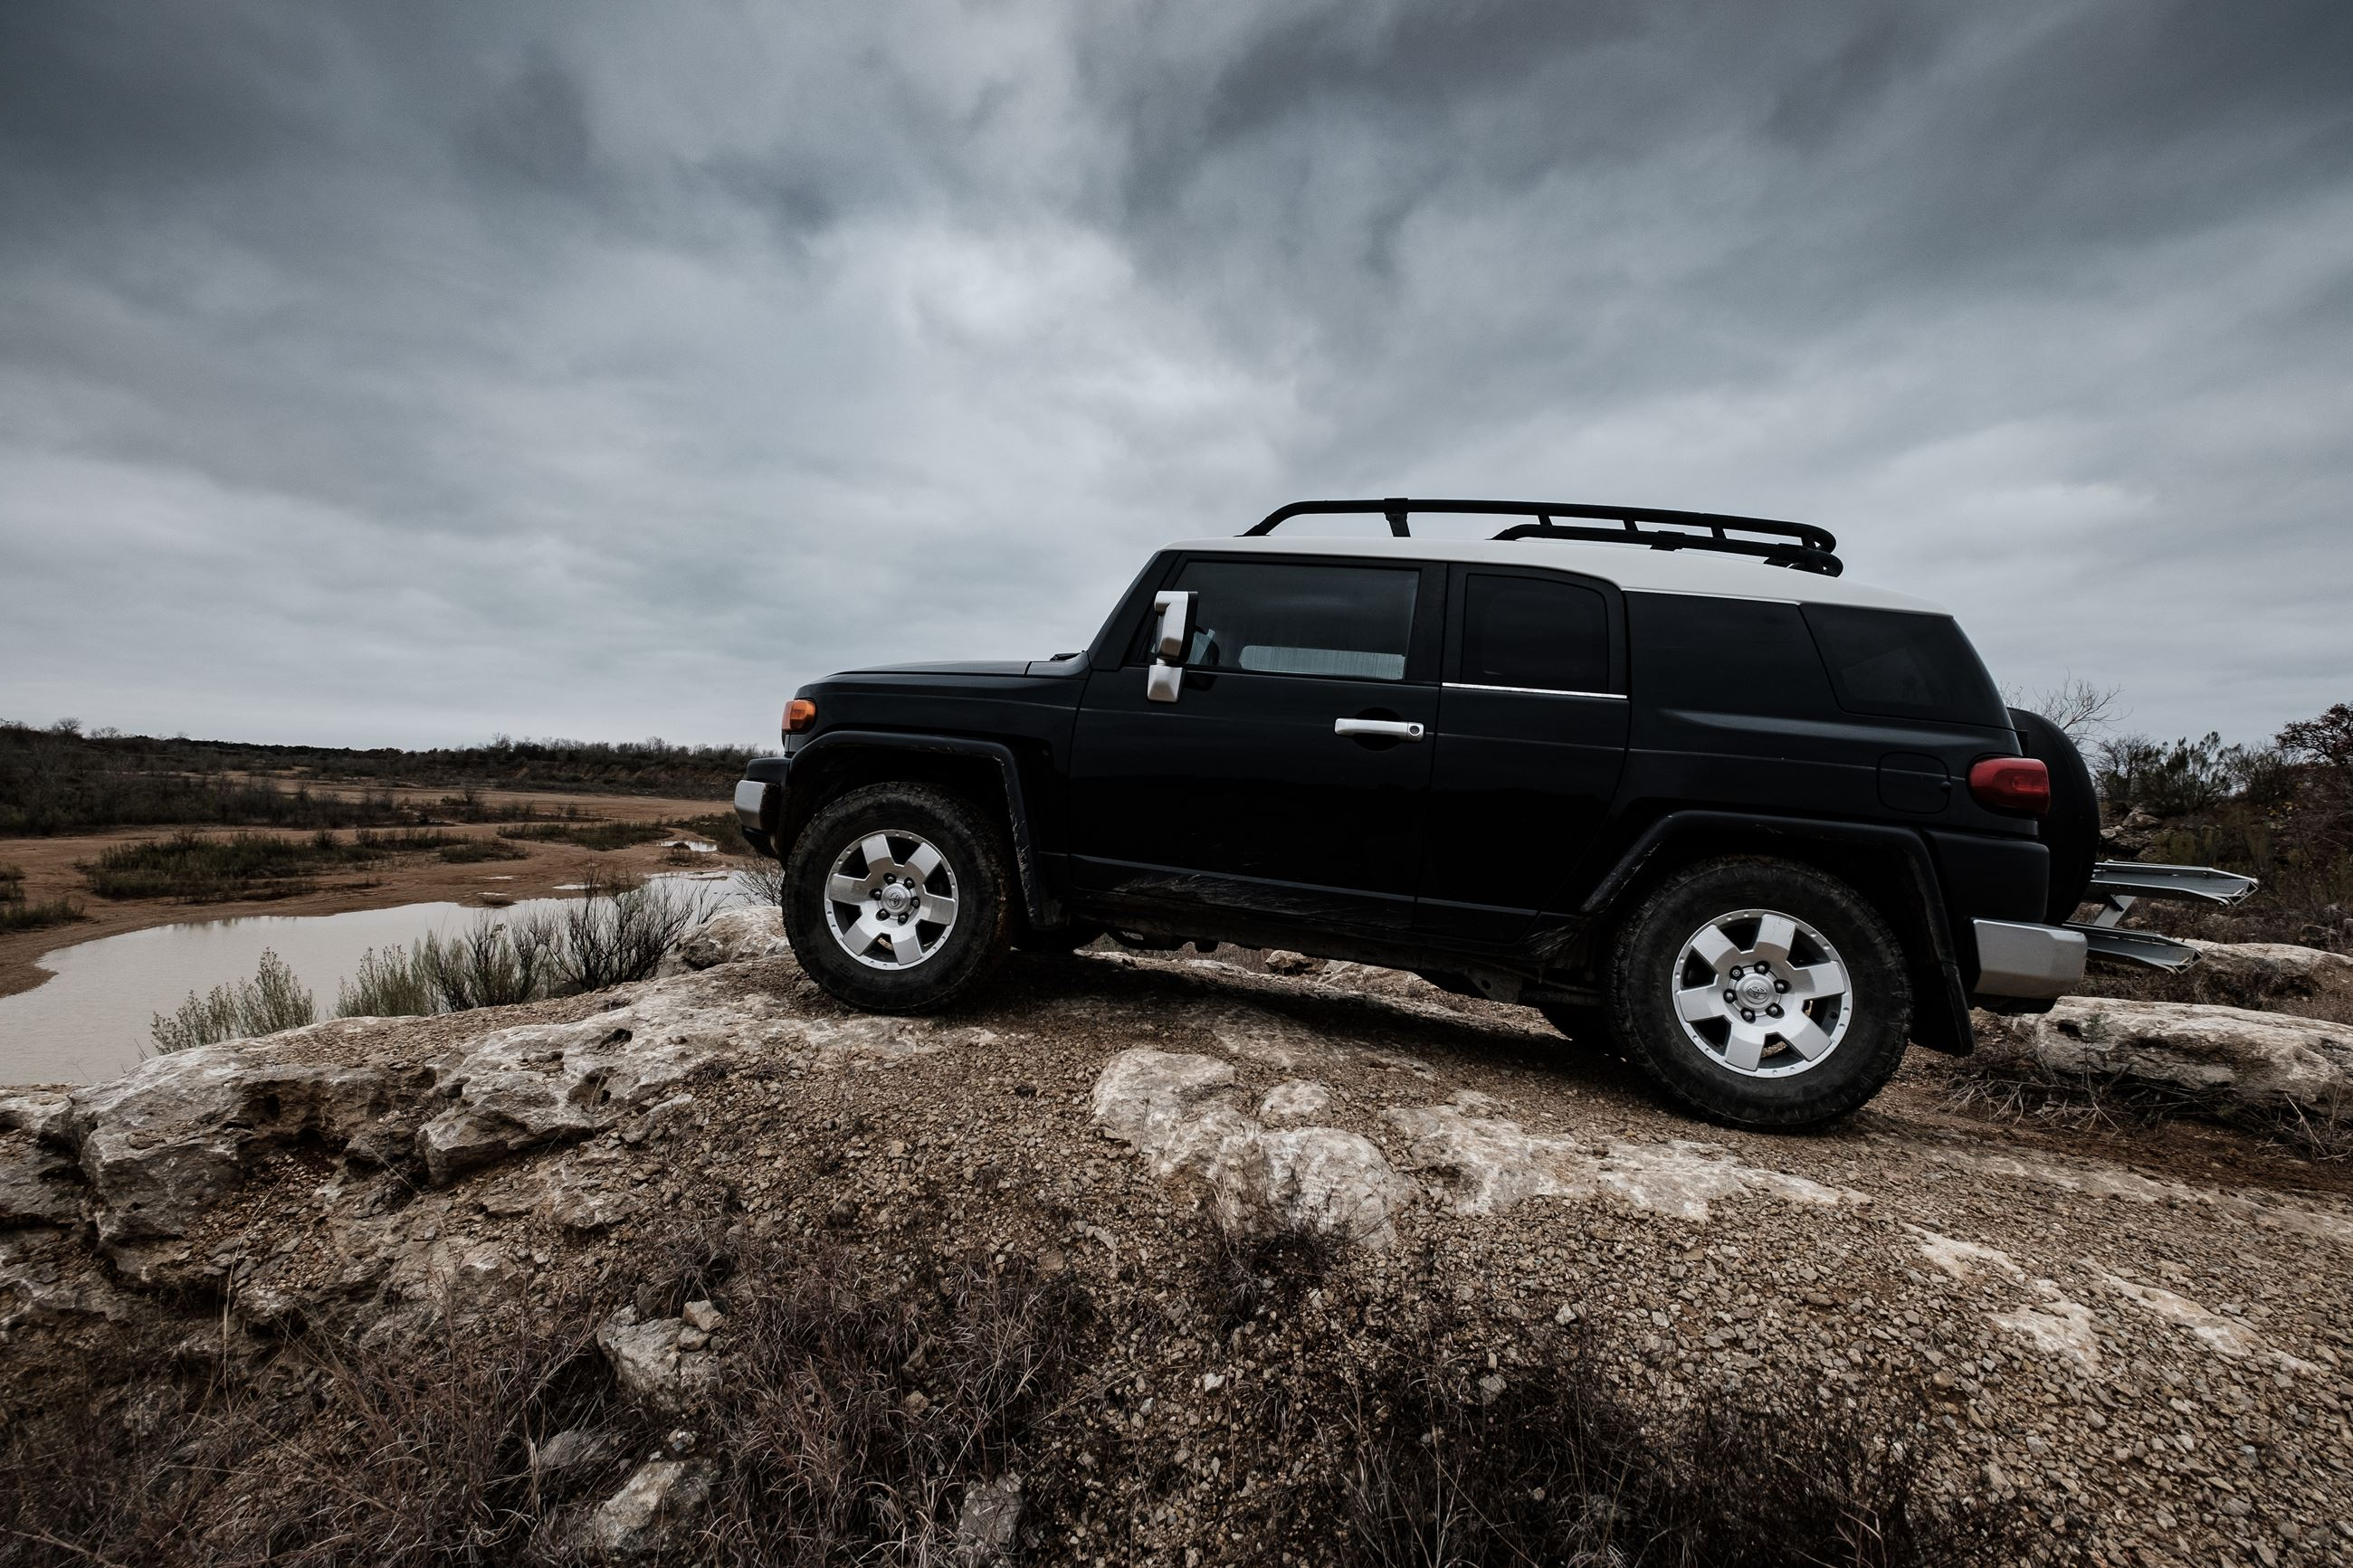 Fj photo overlook